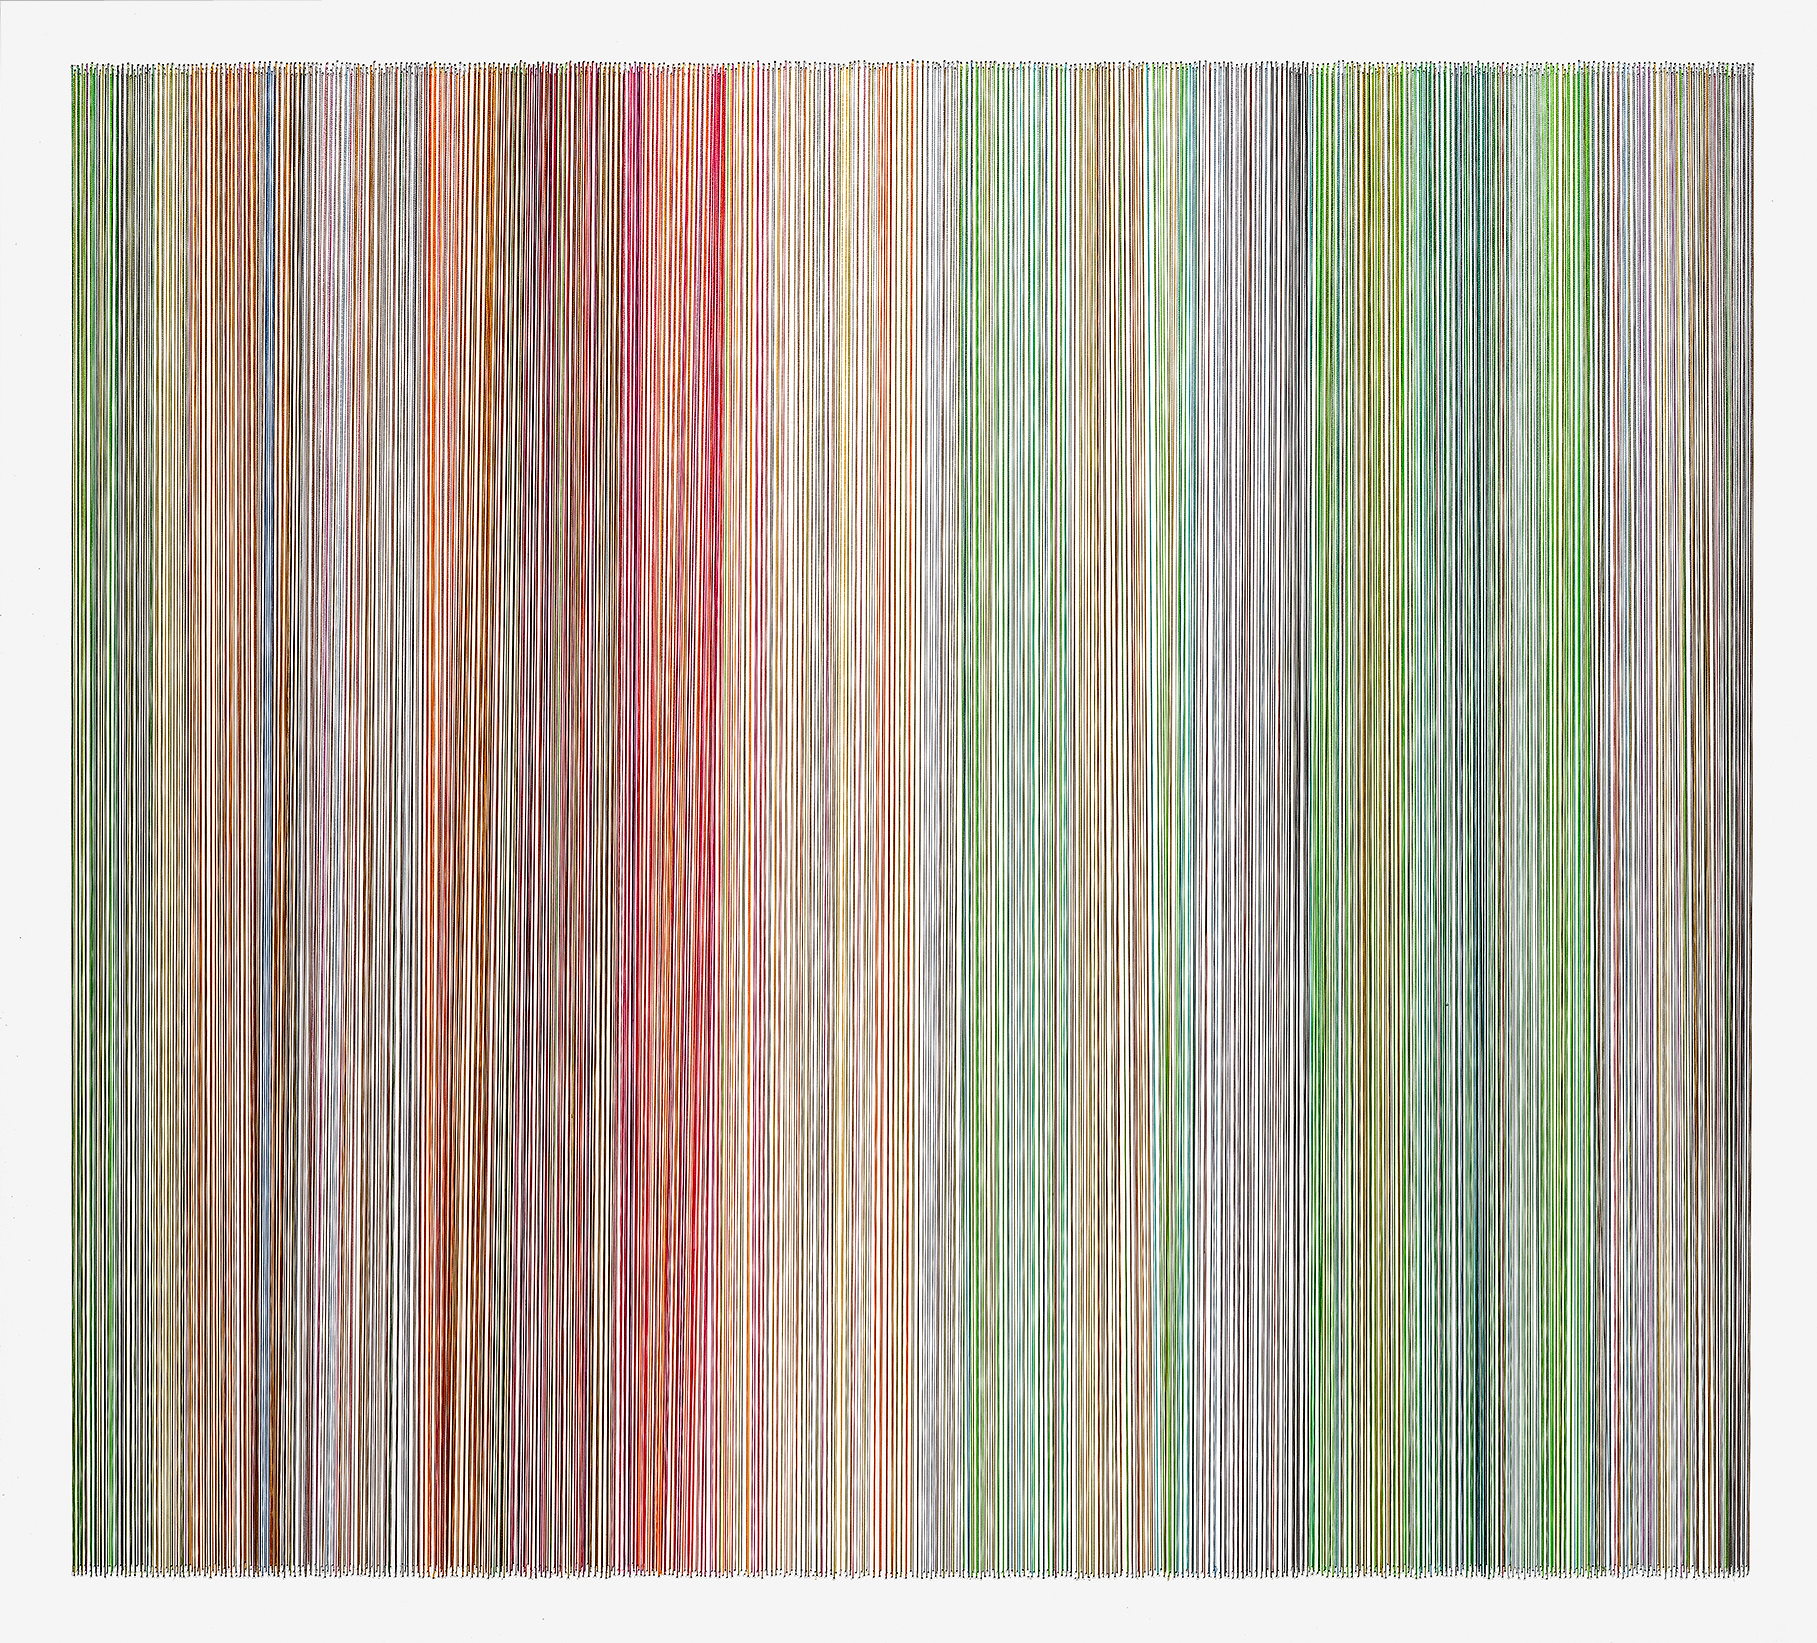 thread drawing 18  2013 rayon thread 31 by 28 inches